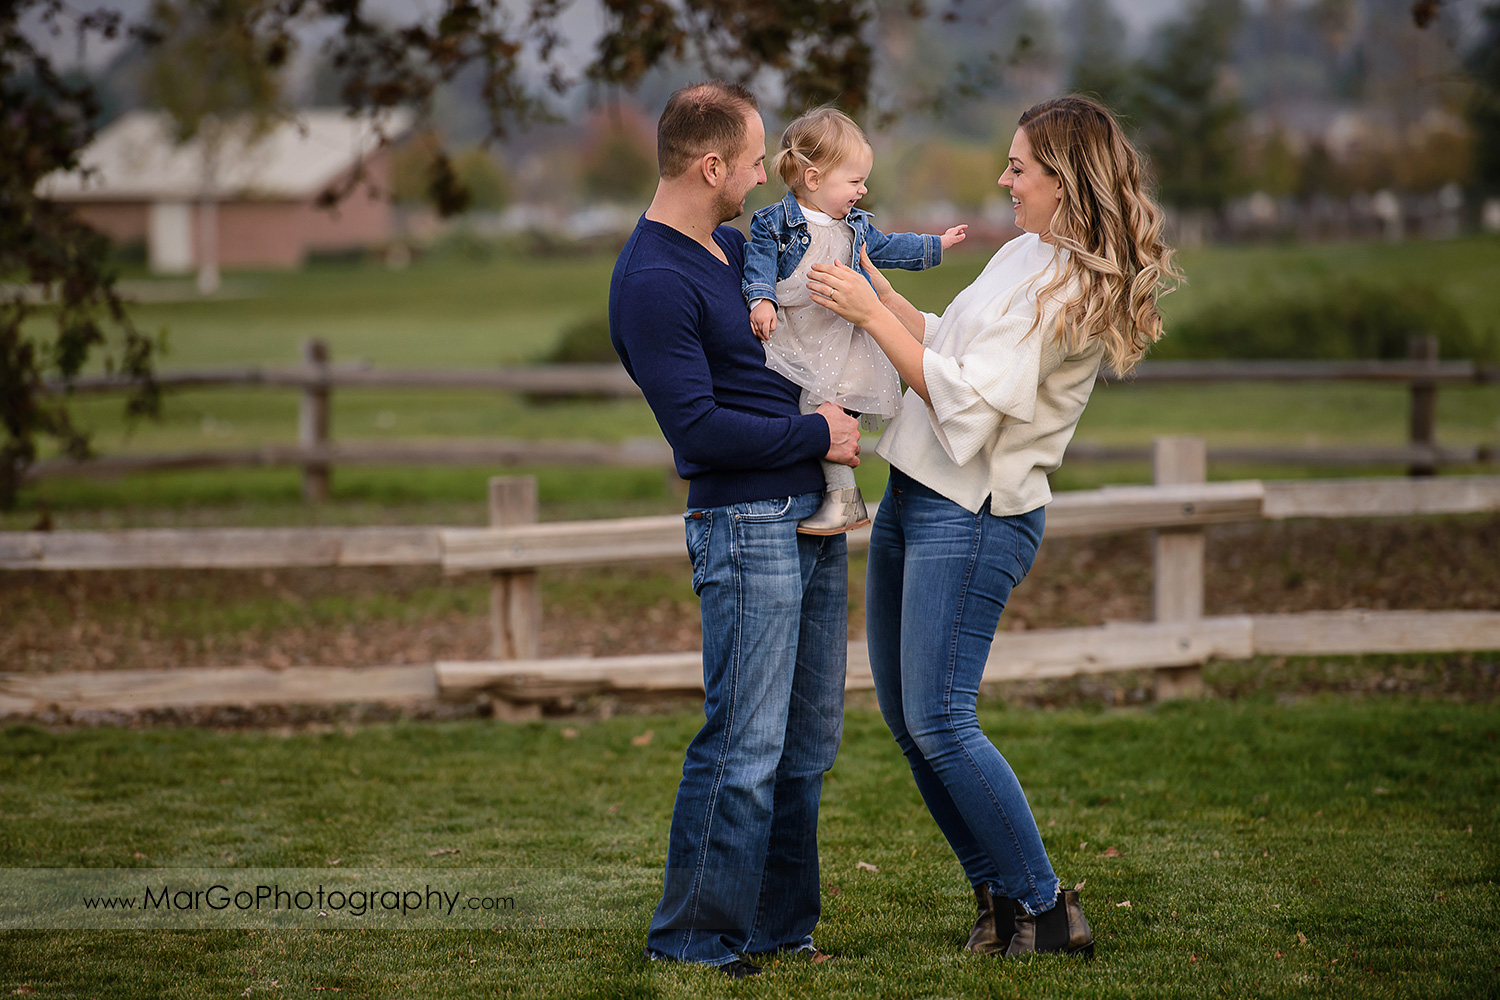 father wearing navy blue sweater and mother in white blouse holding little girl in white dress and jeans jacket standing on the grass during family session at San Jose Martial Cottle Park